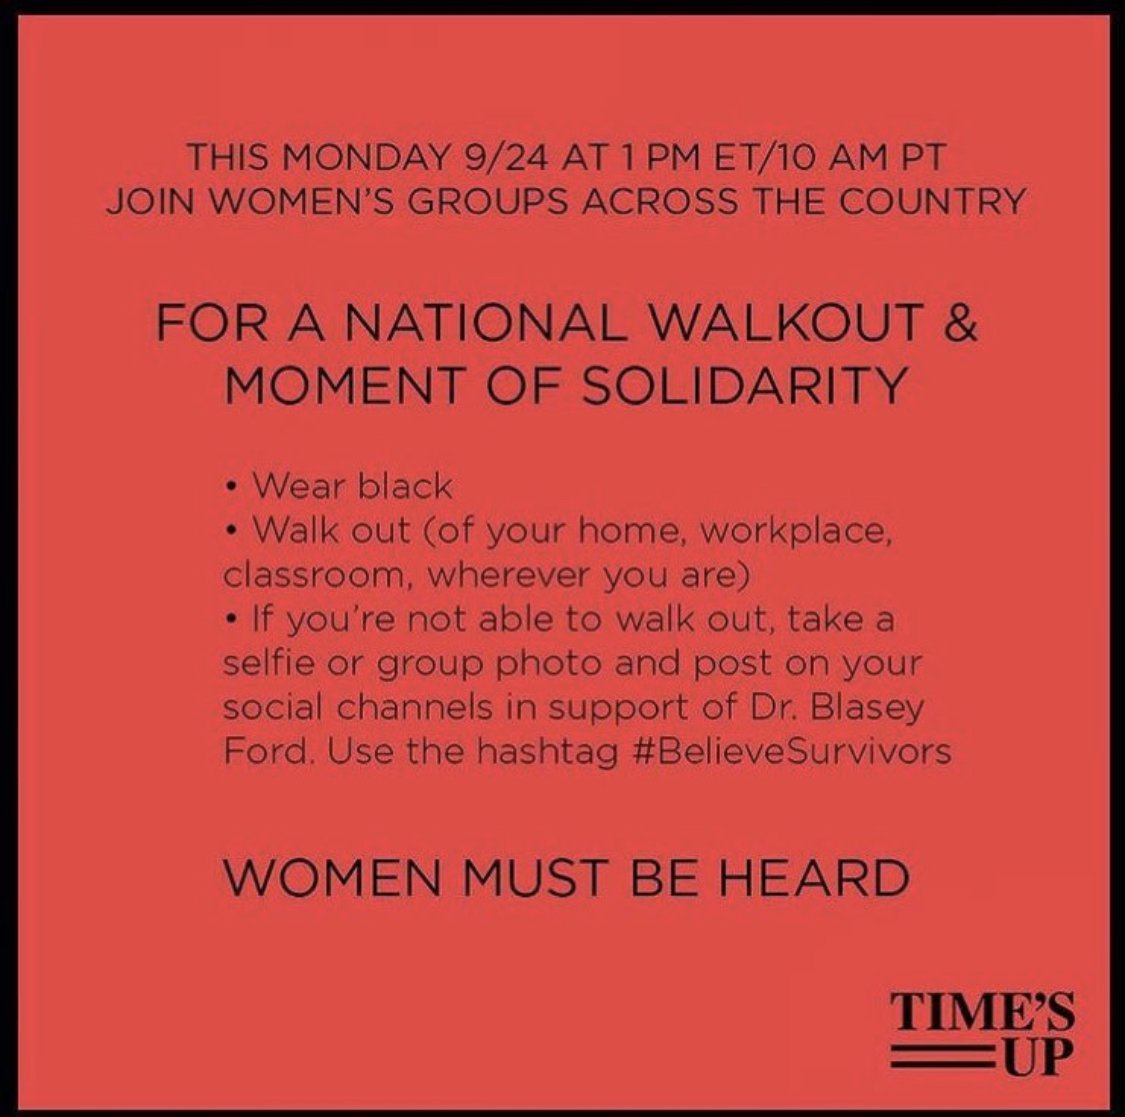 Remember: National #BelieveSurviviors Solidarity Walkout at 1pm ET today. Wear black, post on social if you can. https://t.co/2c8bGwVx4G